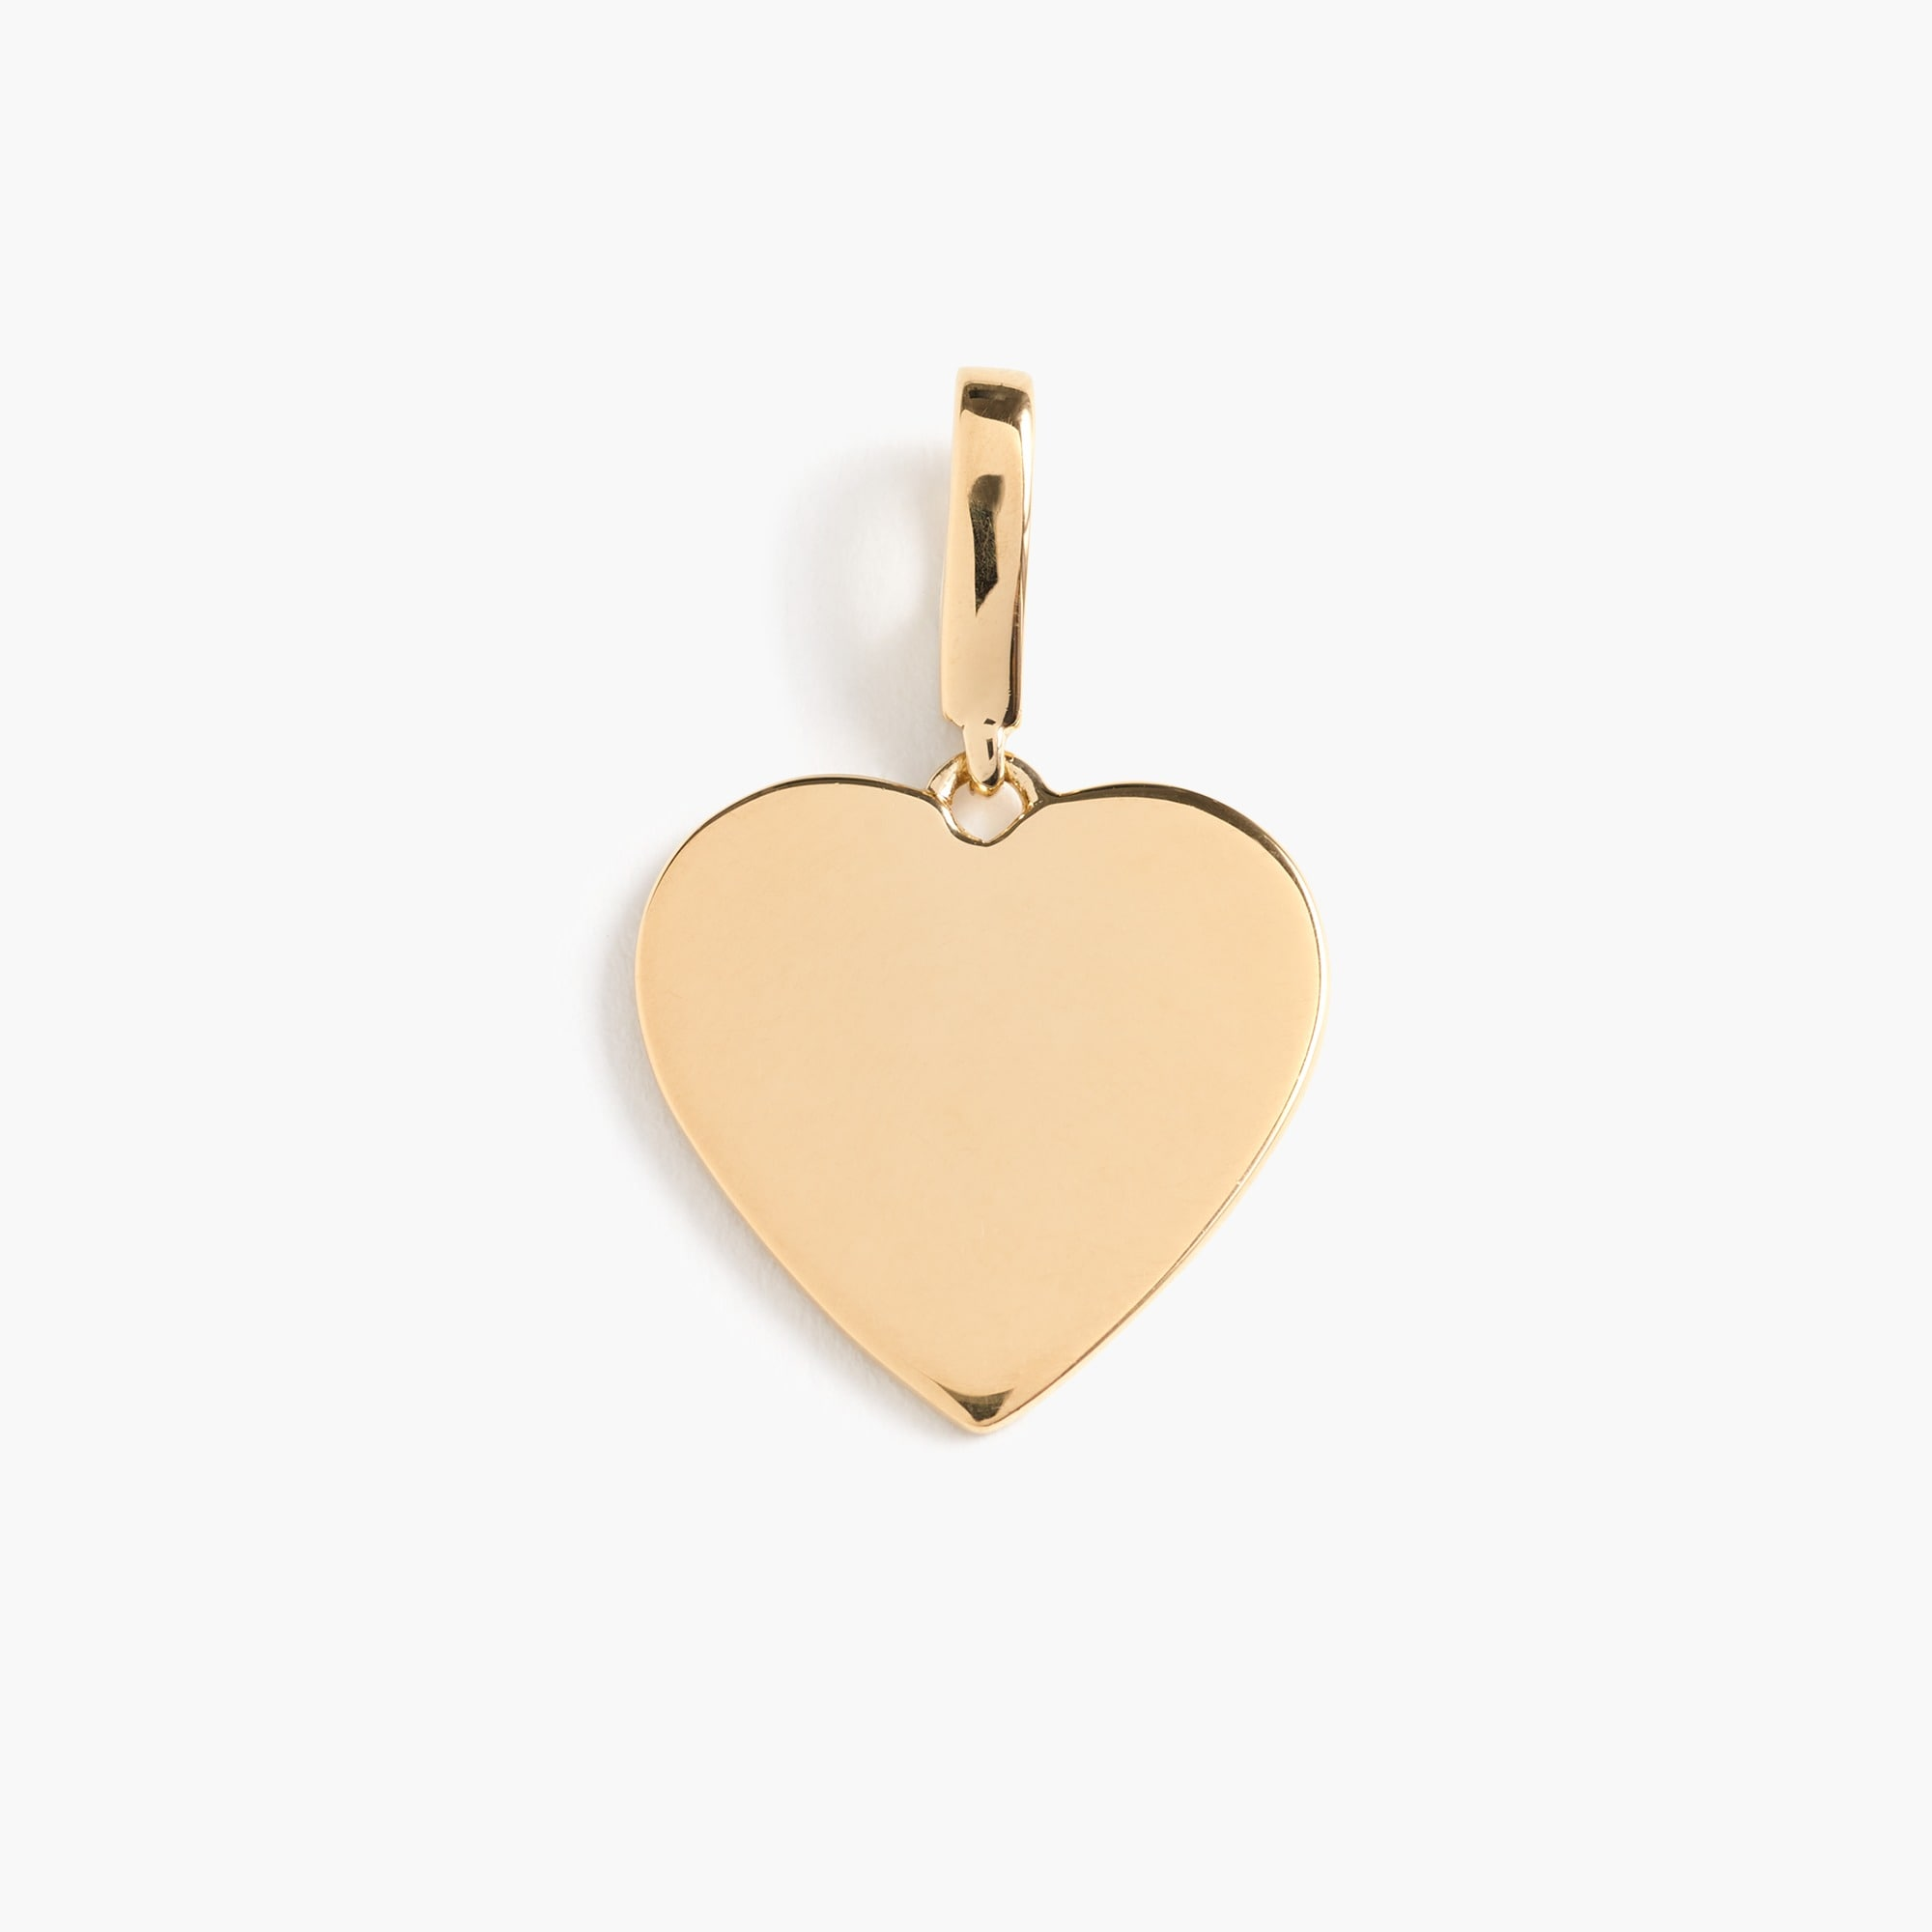 womens Demi-fine 14k gold-plated heart charm